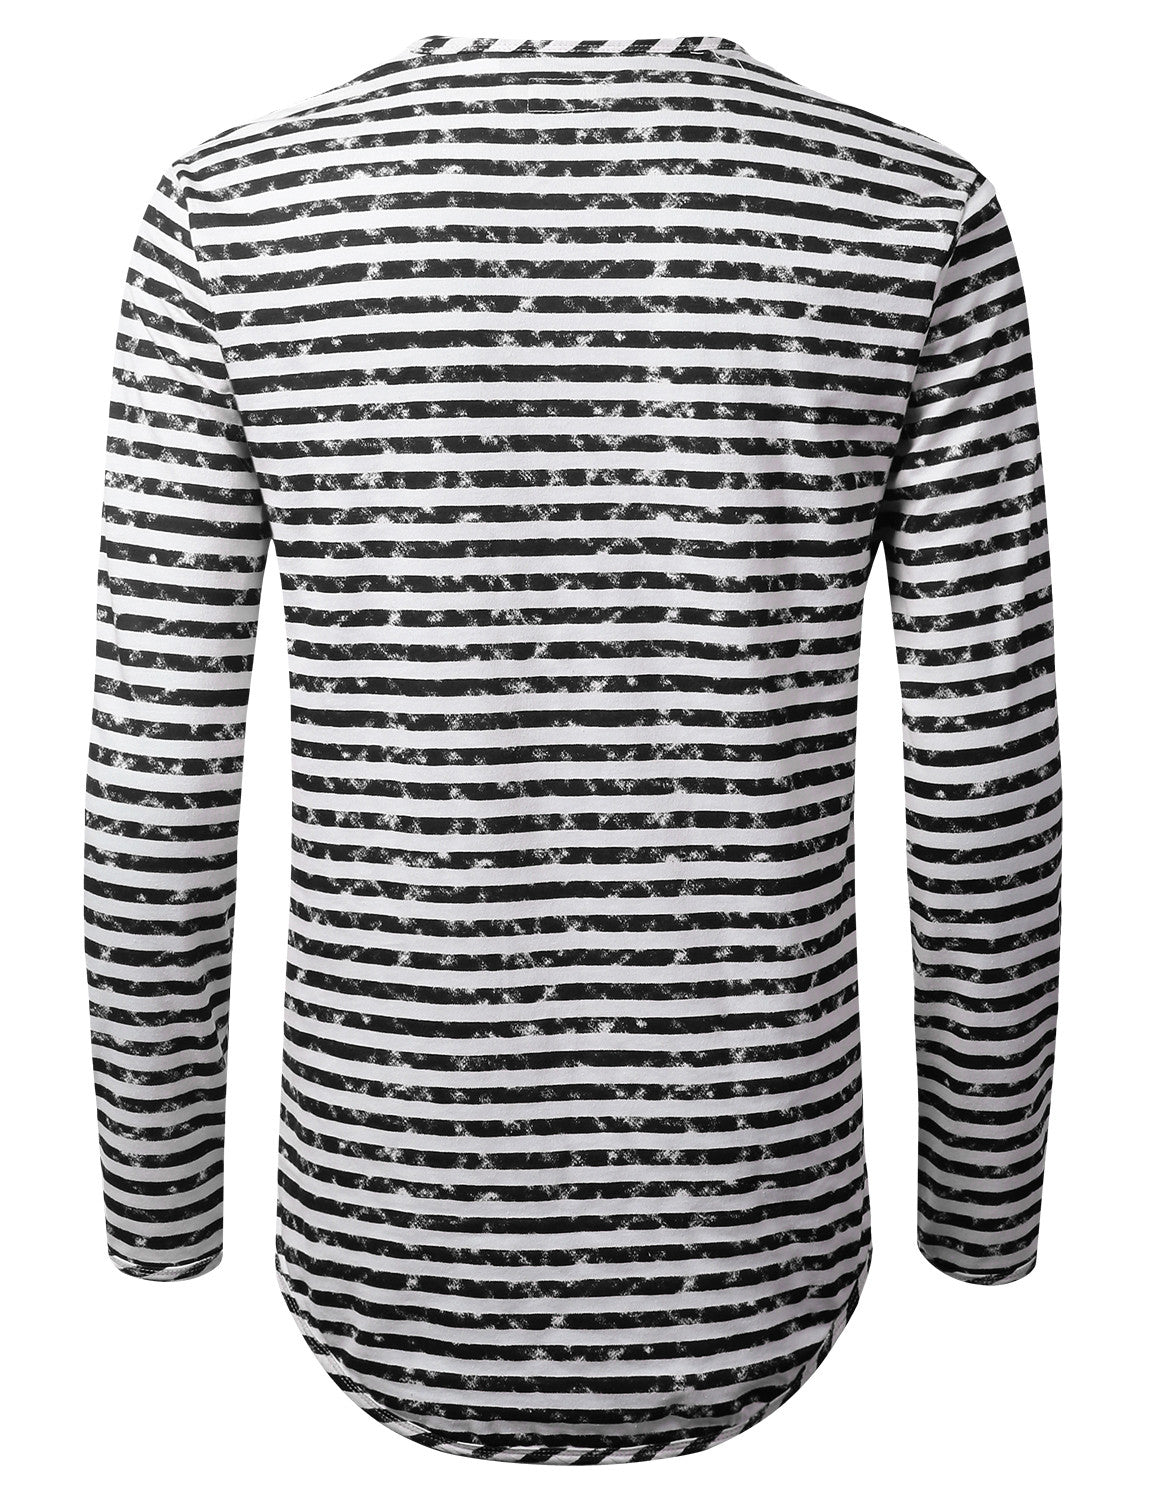 BLACK Faded Striped Long Sleeve Tshirt - URBANCREWS